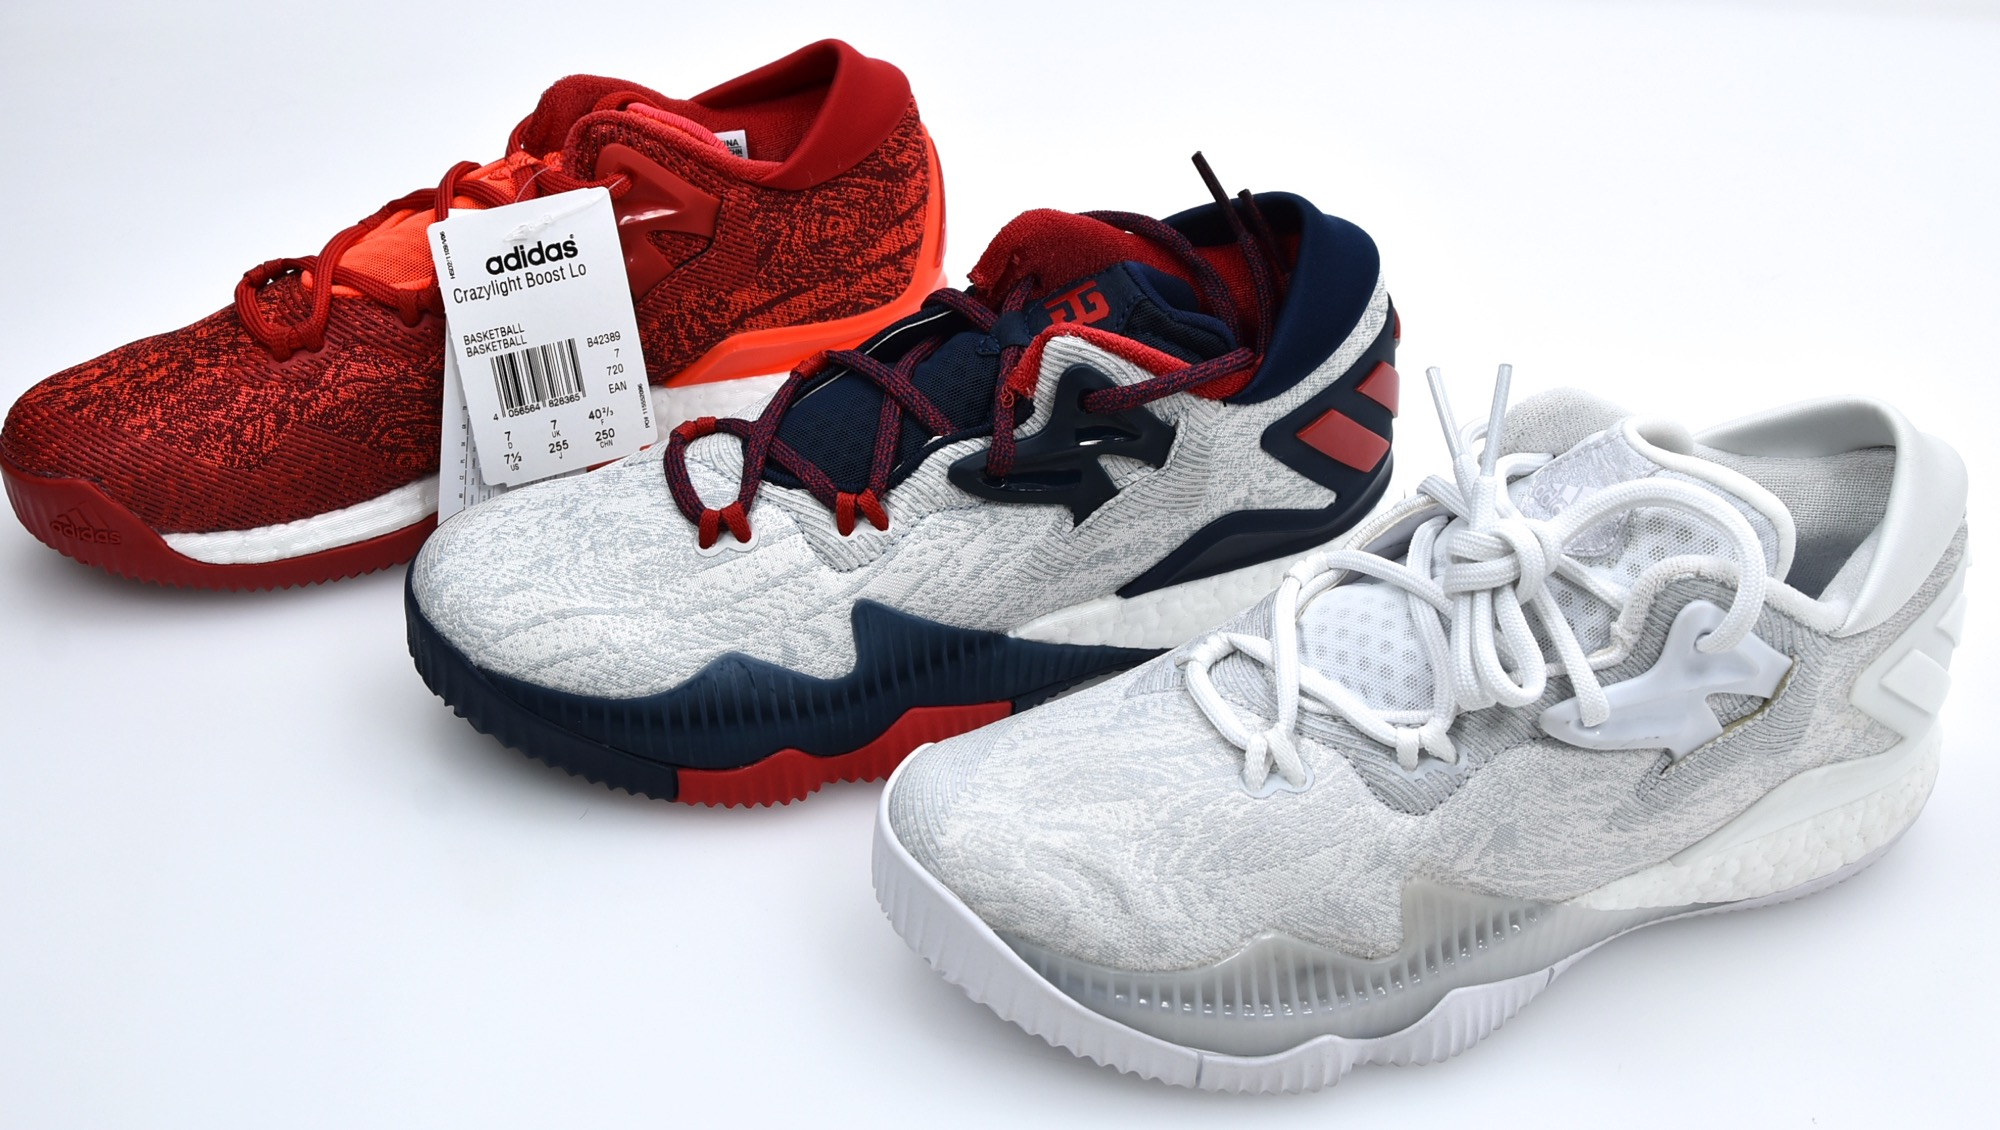 separation shoes 20027 4044d ADIDAS MAN BASKETBALL SPORTS SNEAKER SHOES CODE CRAZYLIGHT BOOST LOW 2016